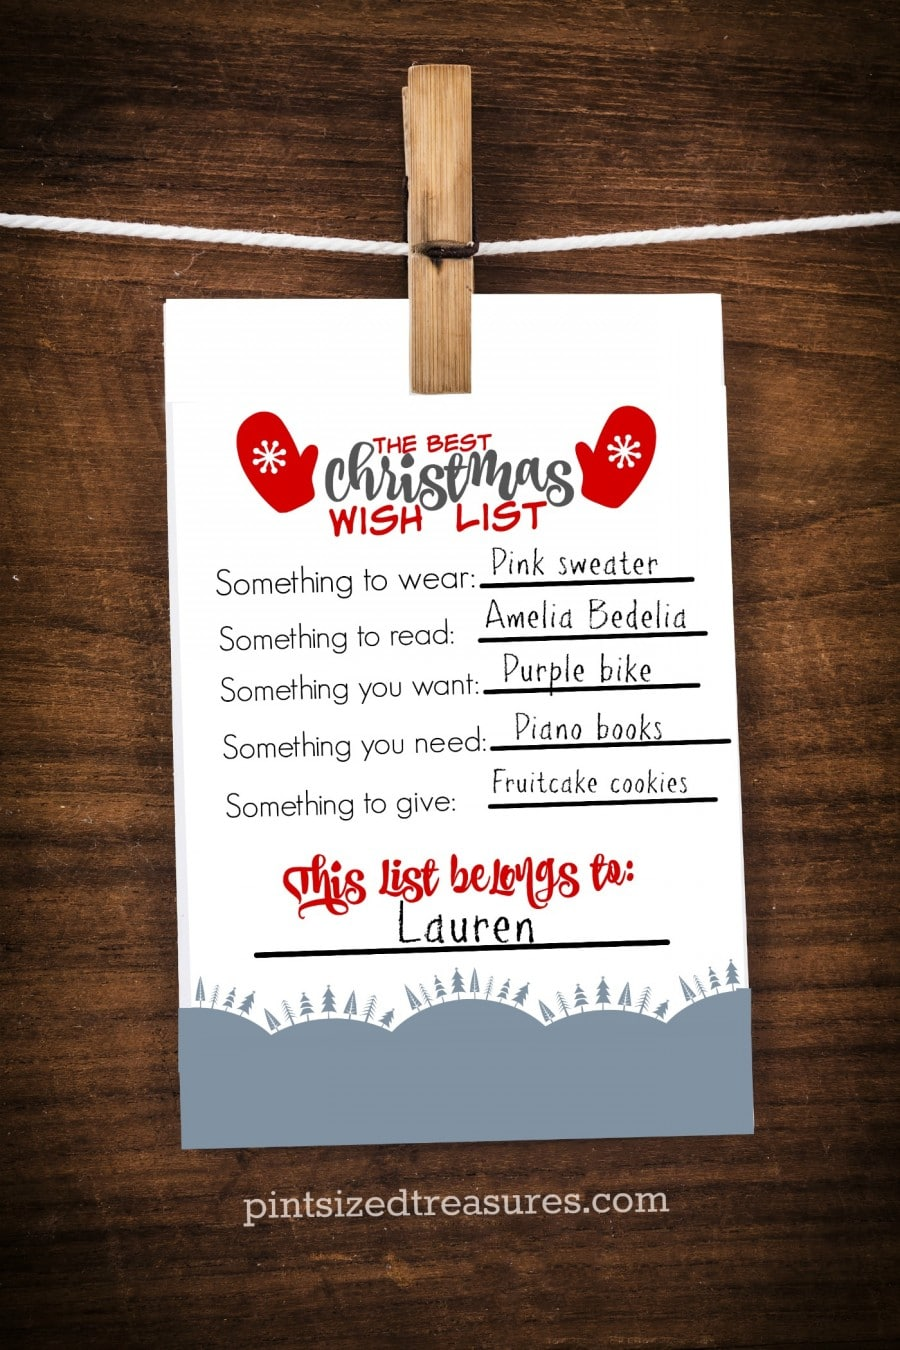 The Best Printable Christmas Wish List For Kids  Pintsized